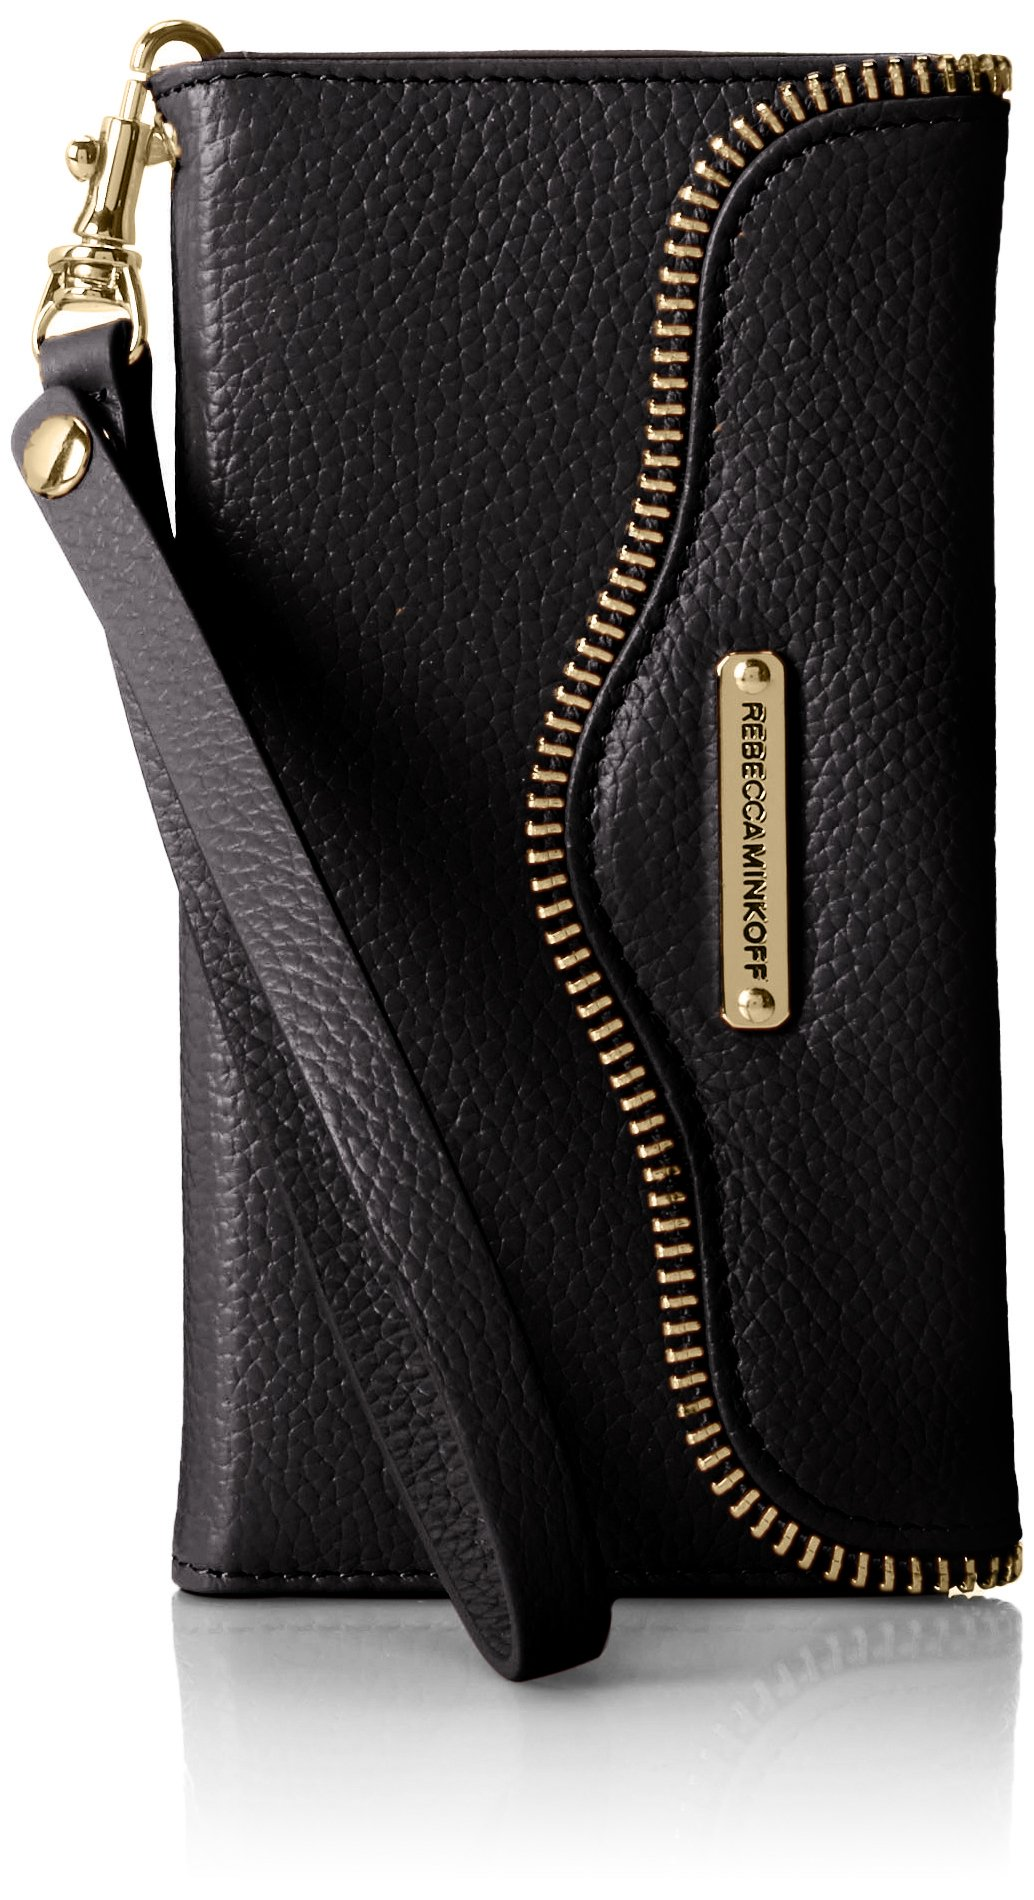 Rebecca Minkoff Iphone 6 Leather Folio Cell Phone Case, Black, One Size by Rebecca Minkoff